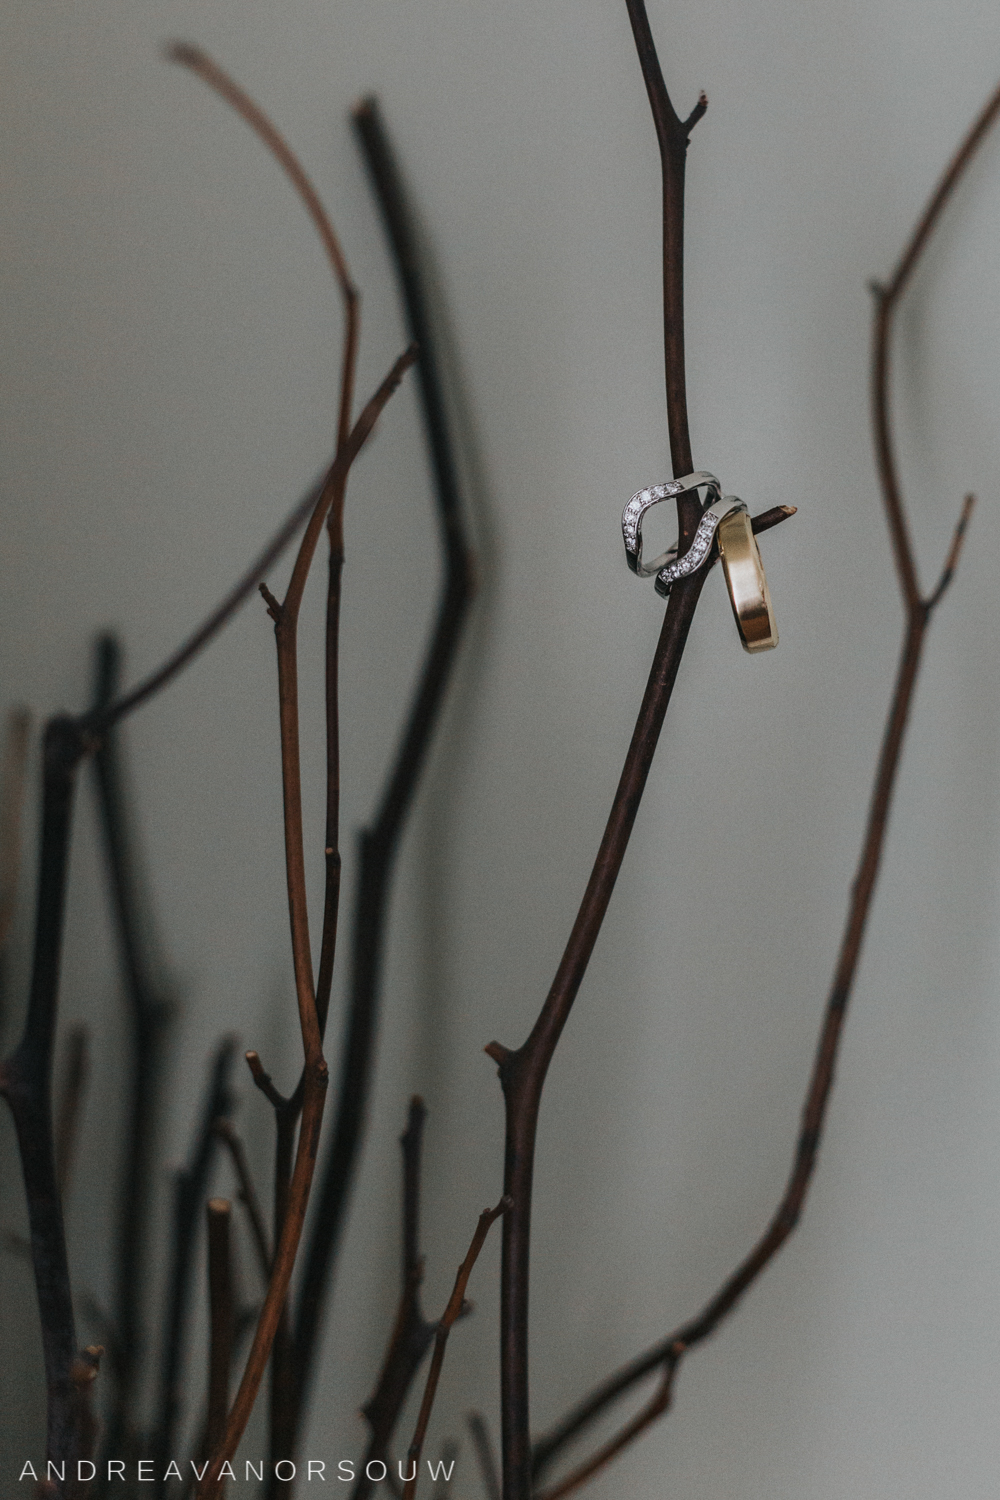 rings_detail_macrokirkbrae_country_club_bride_groom_wedding_rhode_island_lincoln_natural_photography_connecticut_new_england_photographer.jpg